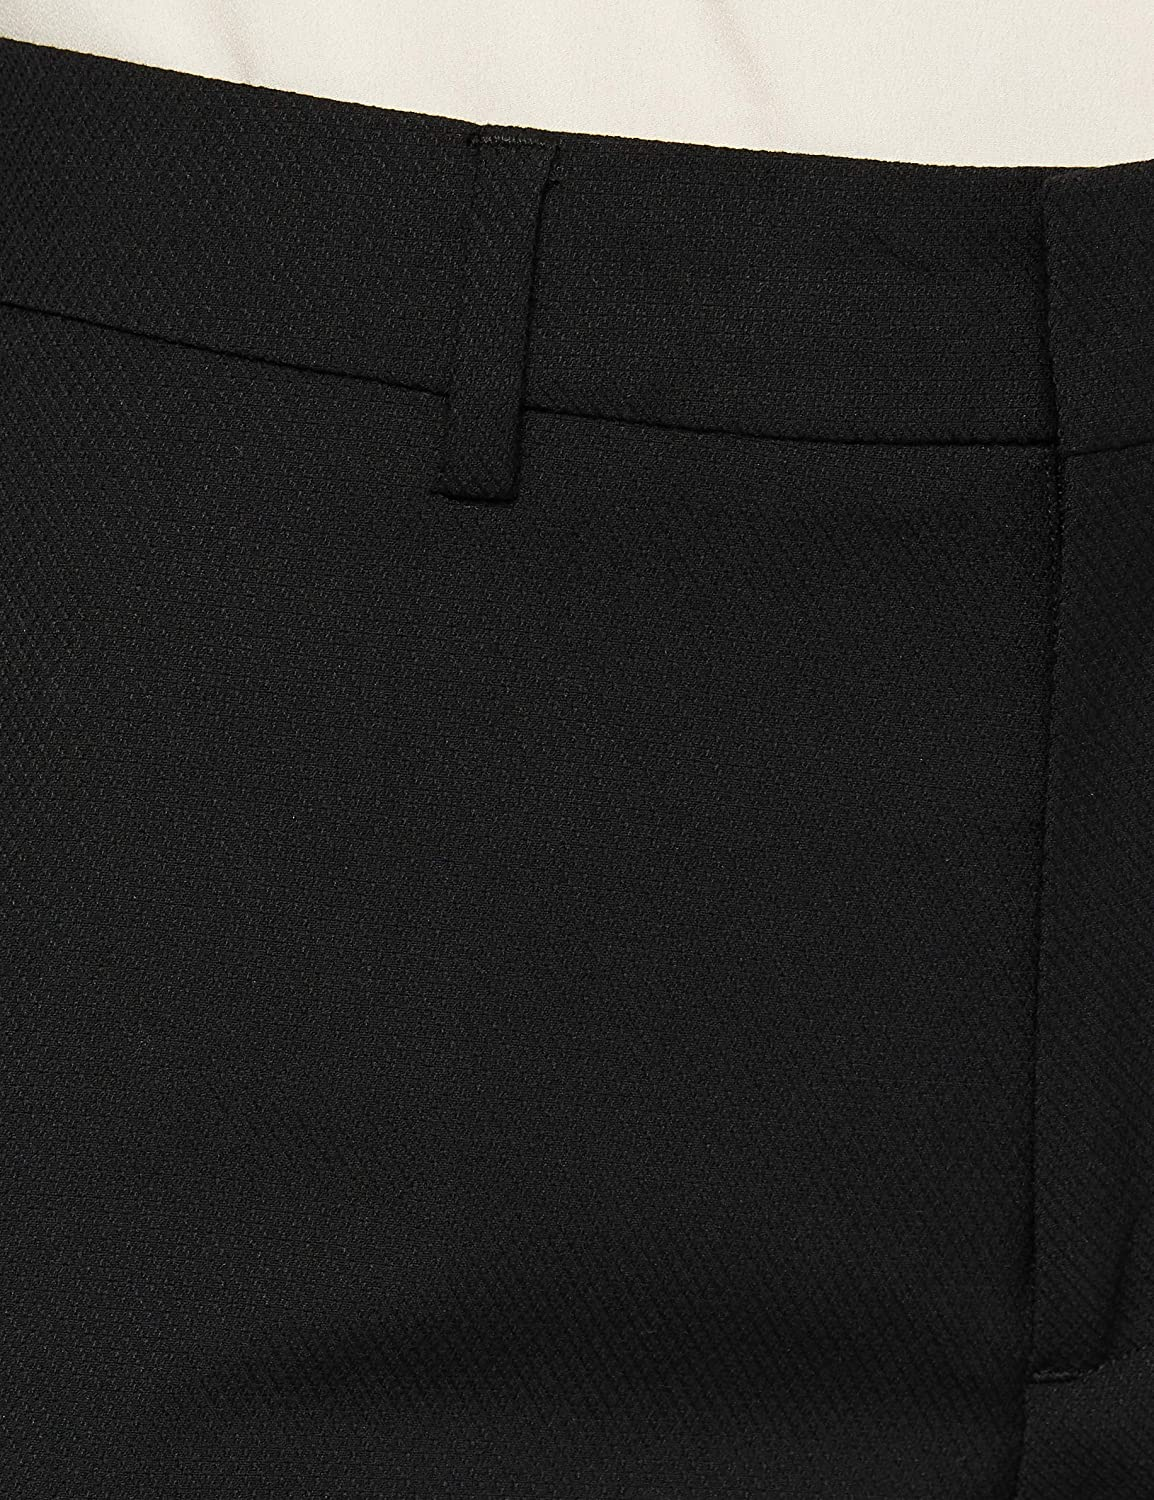 Scotch /& Soda Lowry Tailored Slim Fit Classic Pants Calzoncillos para Mujer